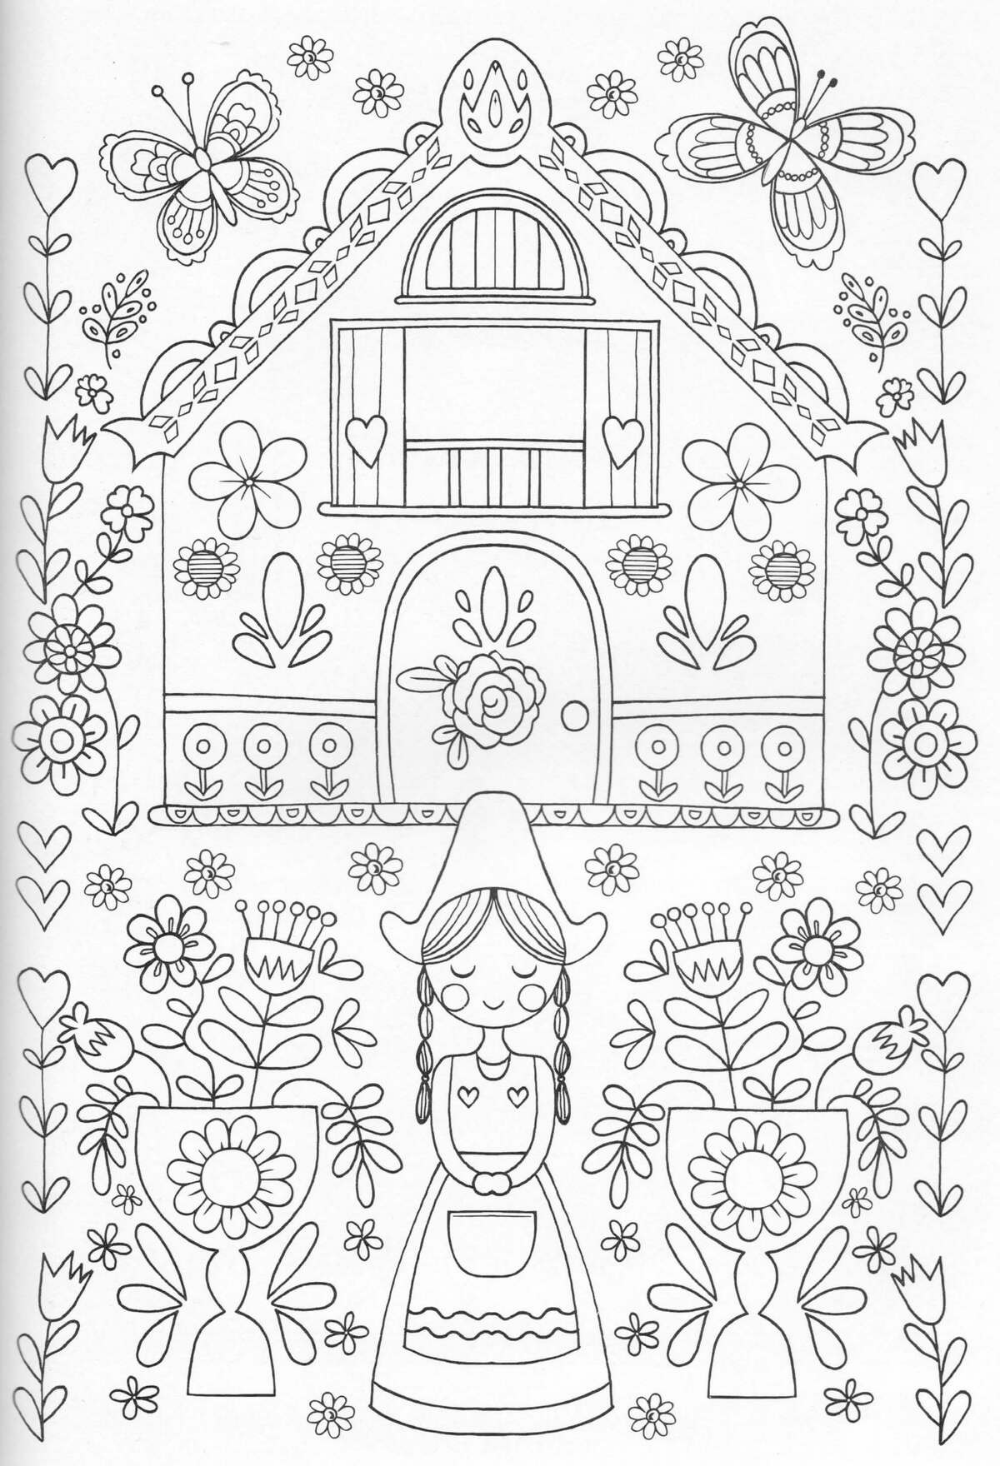 The 10 Best Colouring Pages For Kids For Long Days At Home Paul Paula Mandala Coloring Pages Coloring Books Coloring Pages